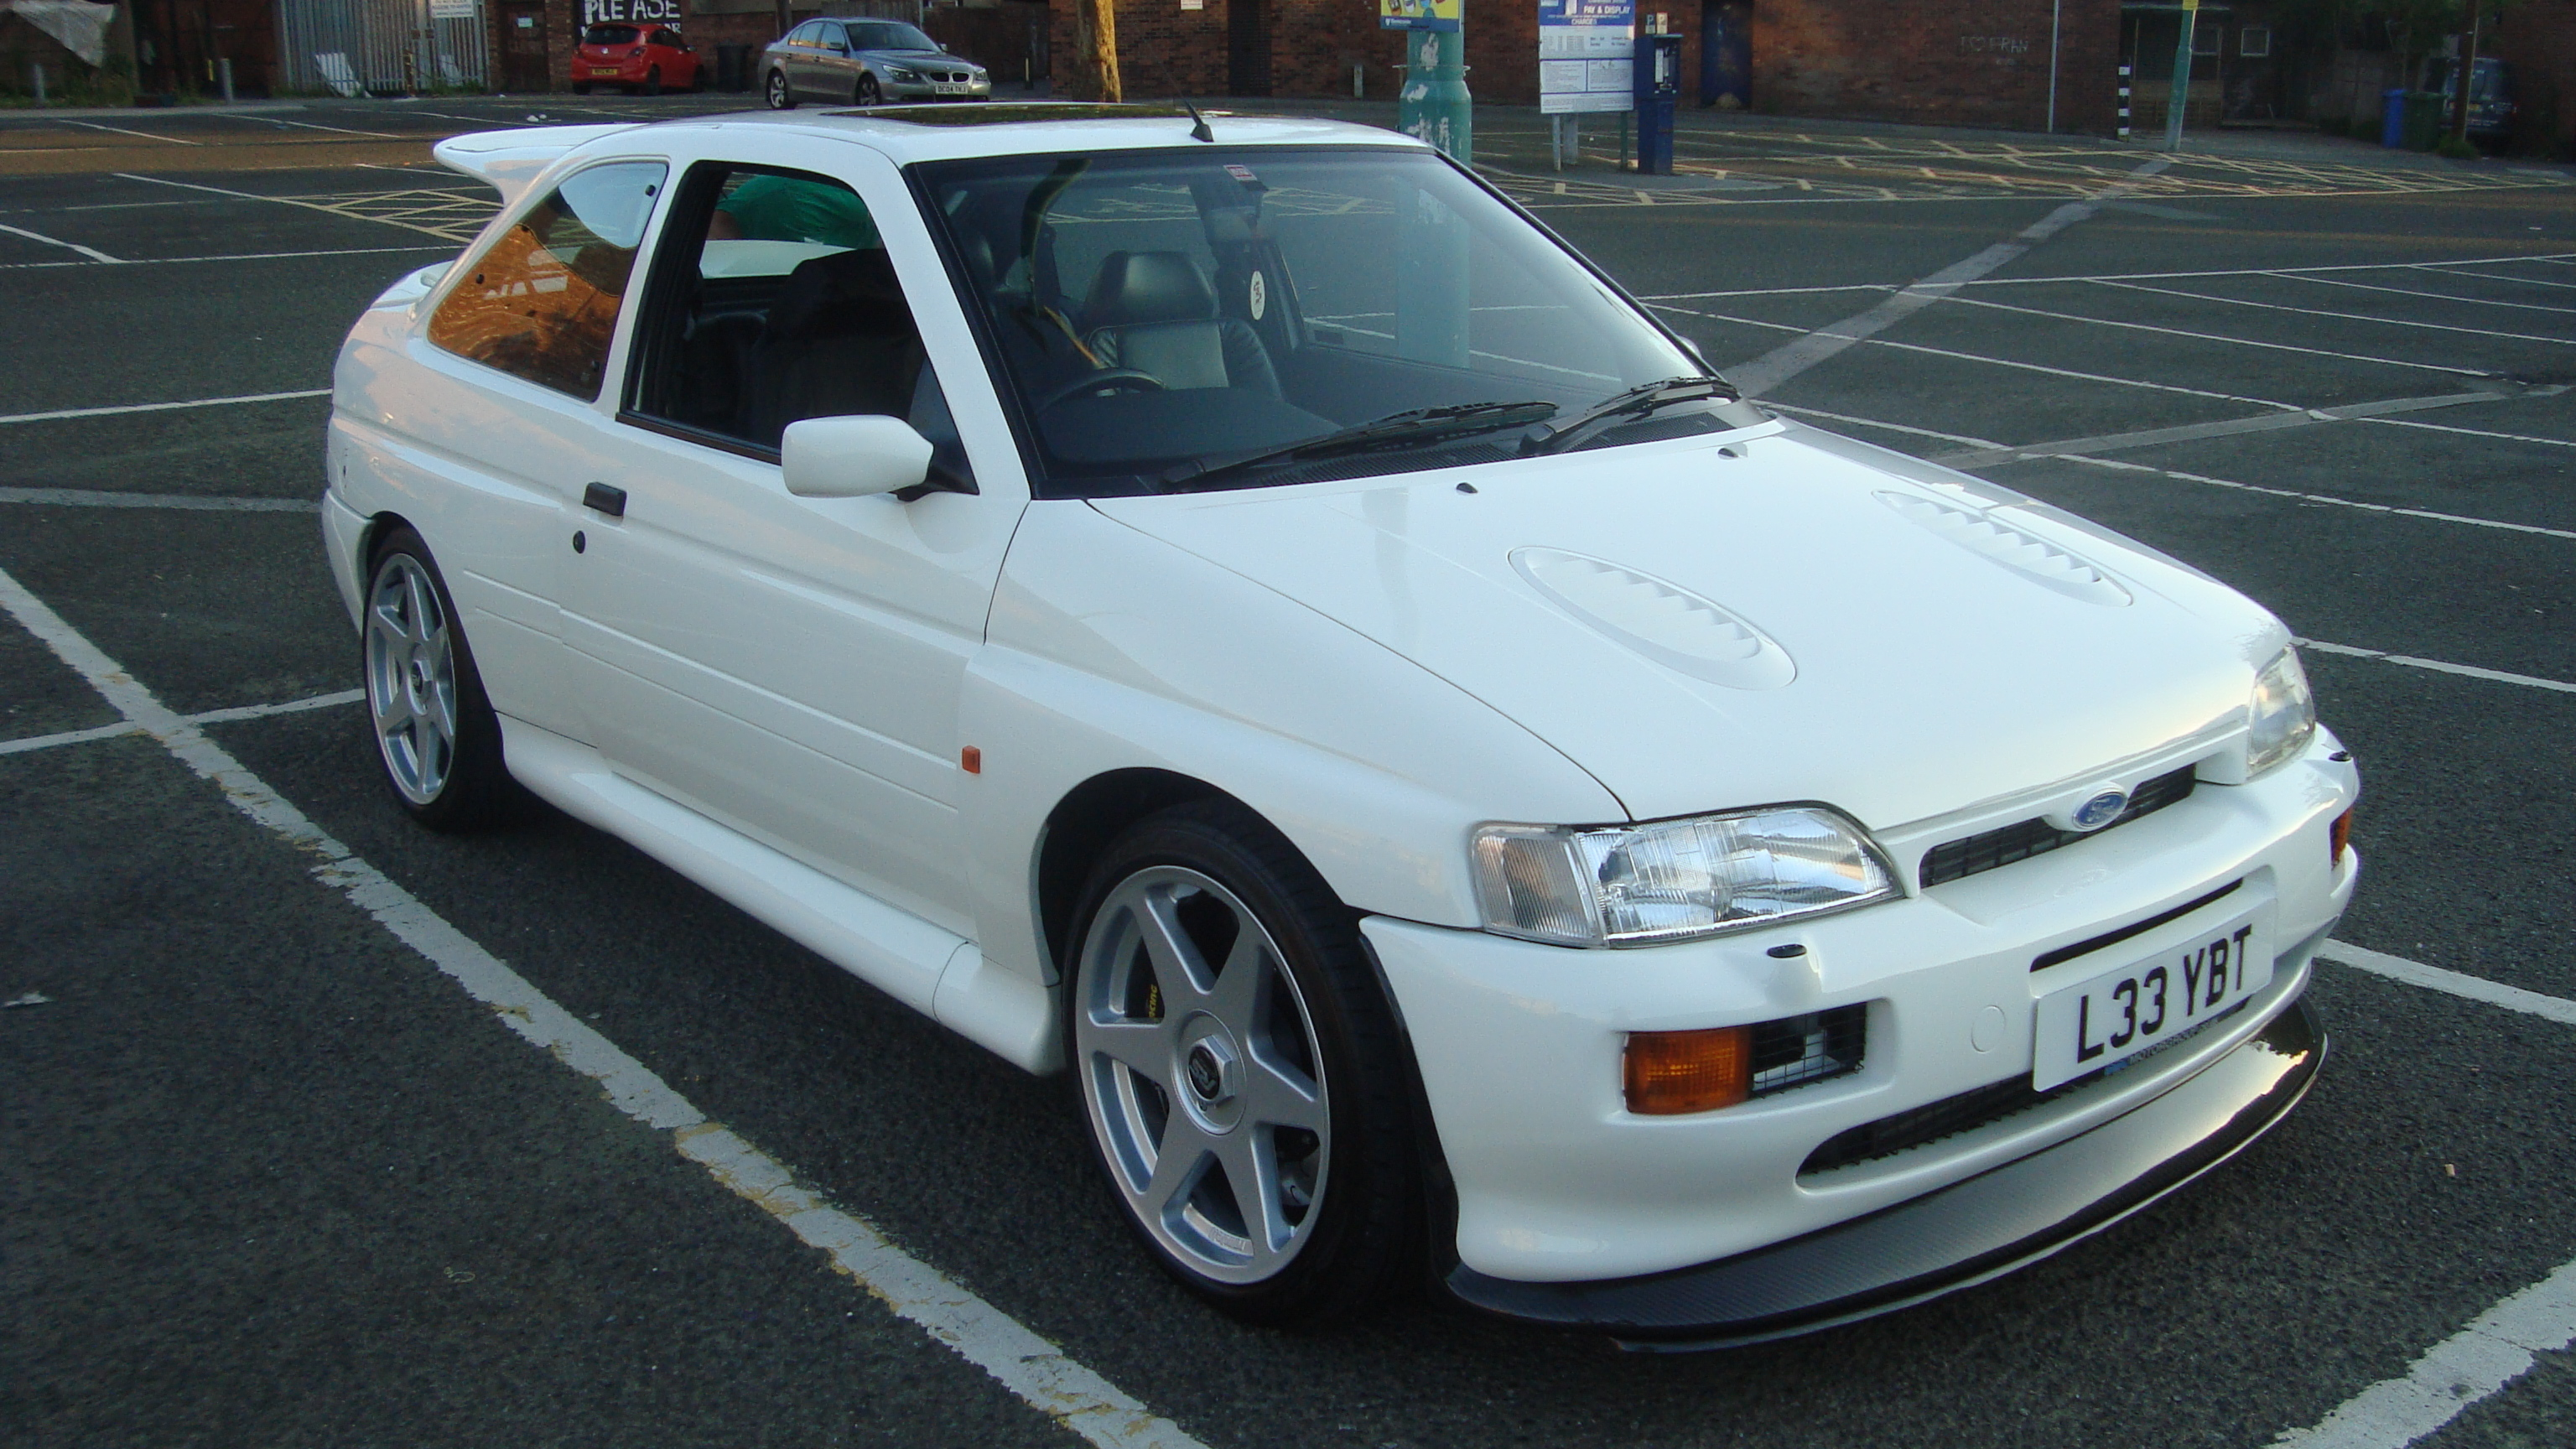 1993_Ford_Escort_RS_Cosworth_Luxury_%2814736242742%29.jpg